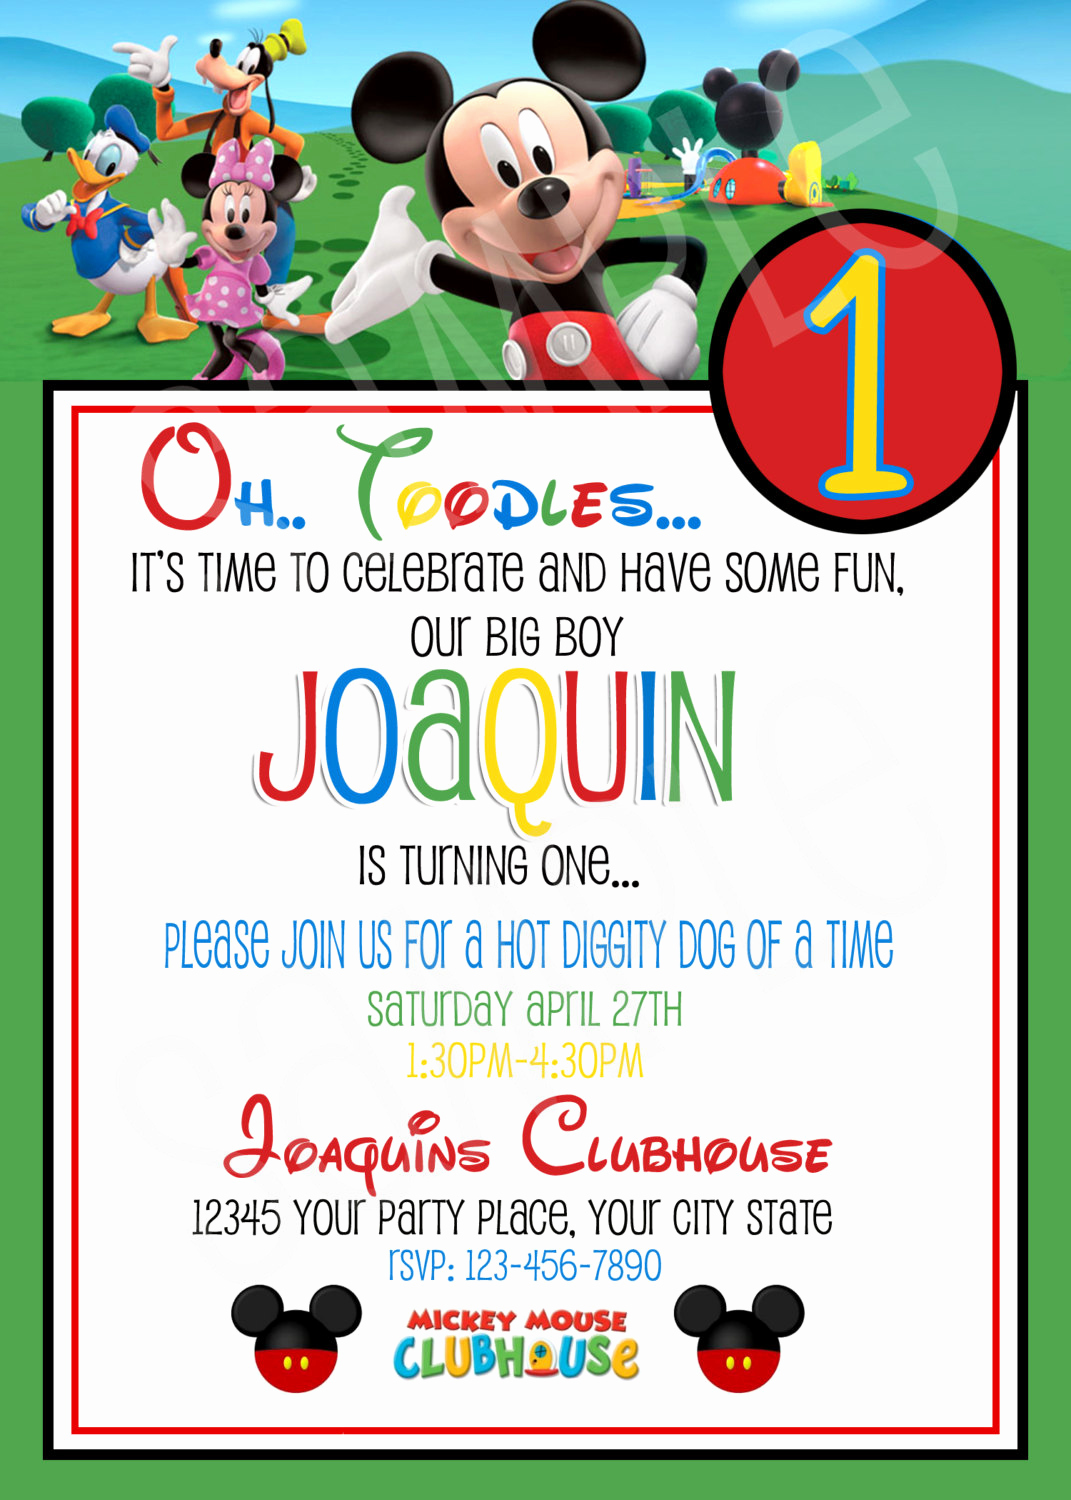 Mickey Mouse Printable Invitation Best Of Mickey Mouse Clubhouse Birthday Invitations Printable